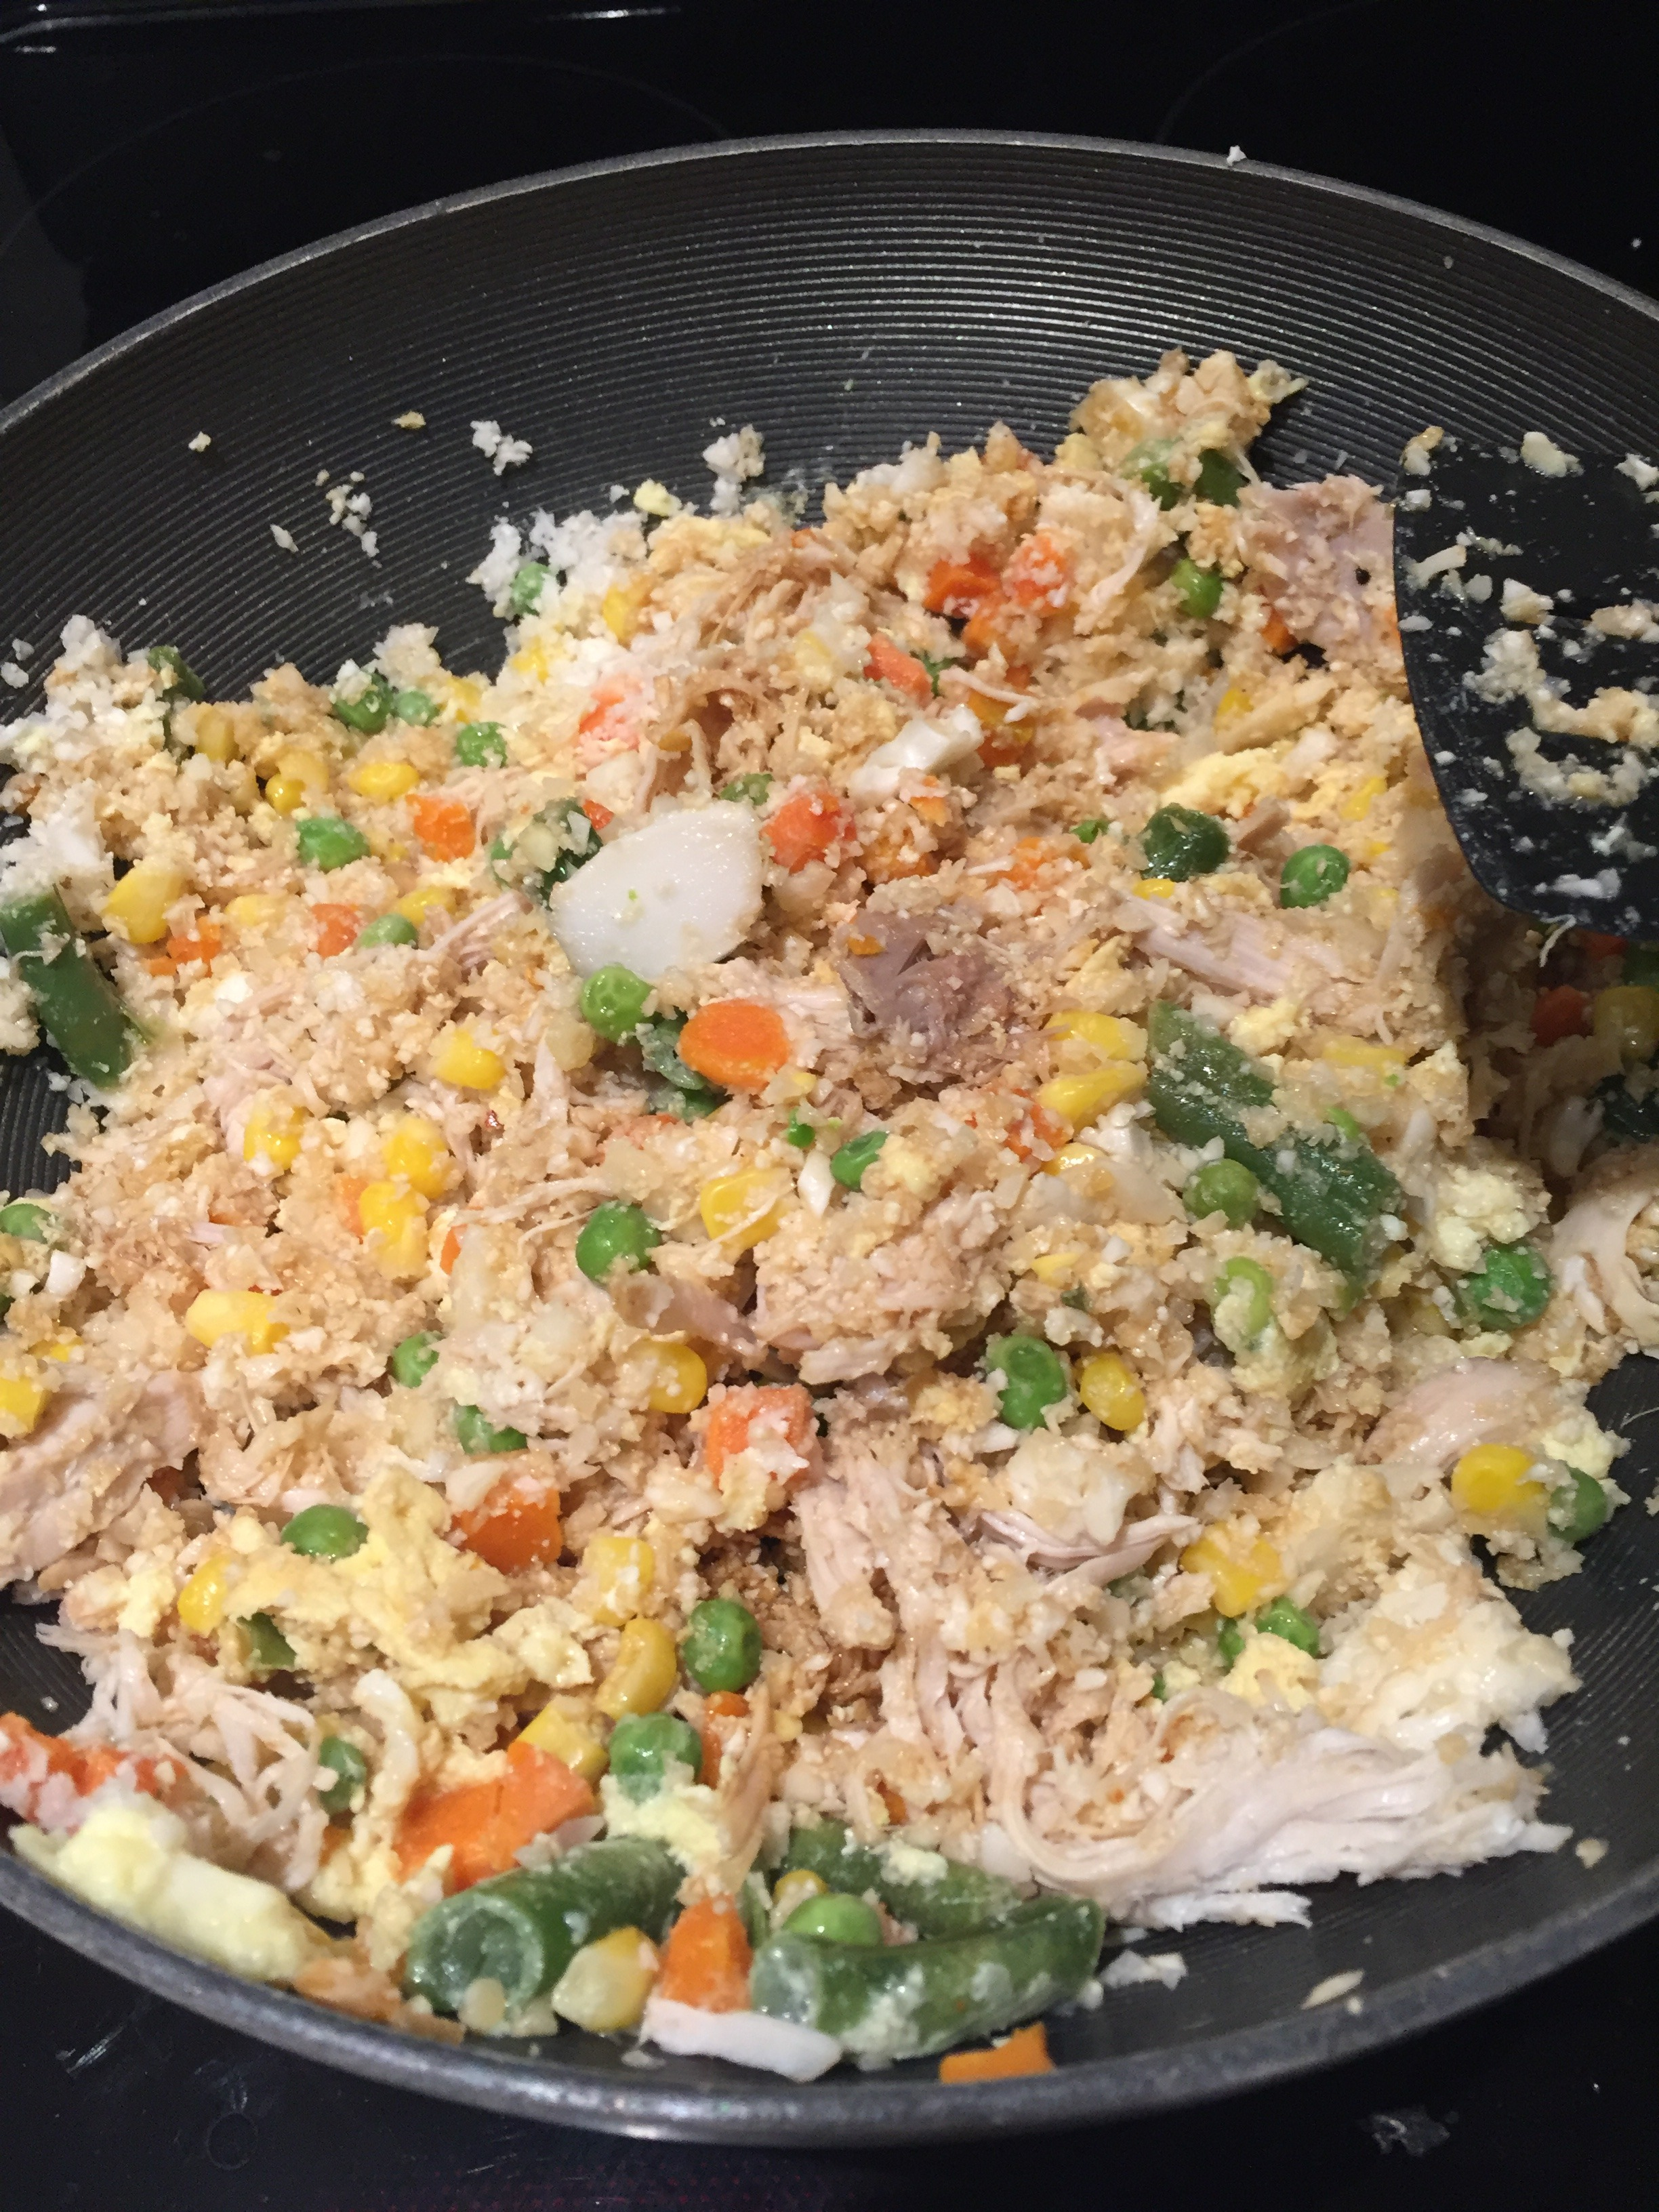 Mix up the leftover turkey with the sauce, cauliflower rice and veggies